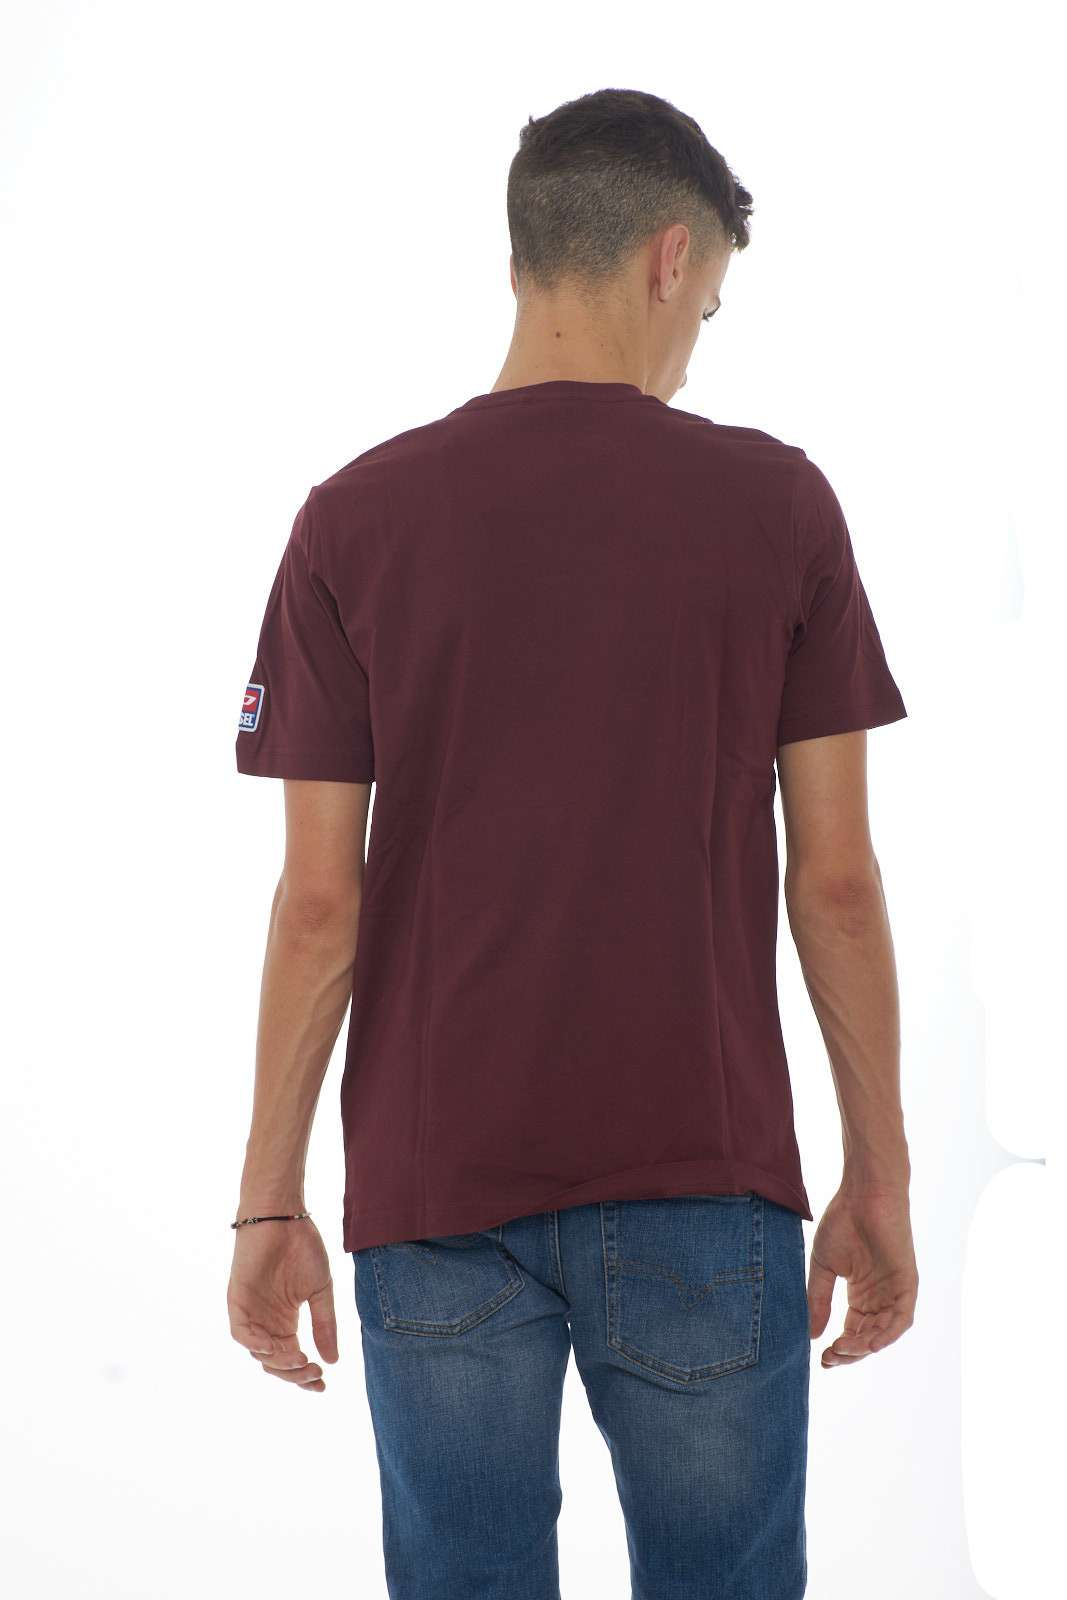 https://www.parmax.com/media/catalog/product/a/i/AI-outlet_parmax-t-shirt-uomo-Diesel-00SY7A-C.jpg